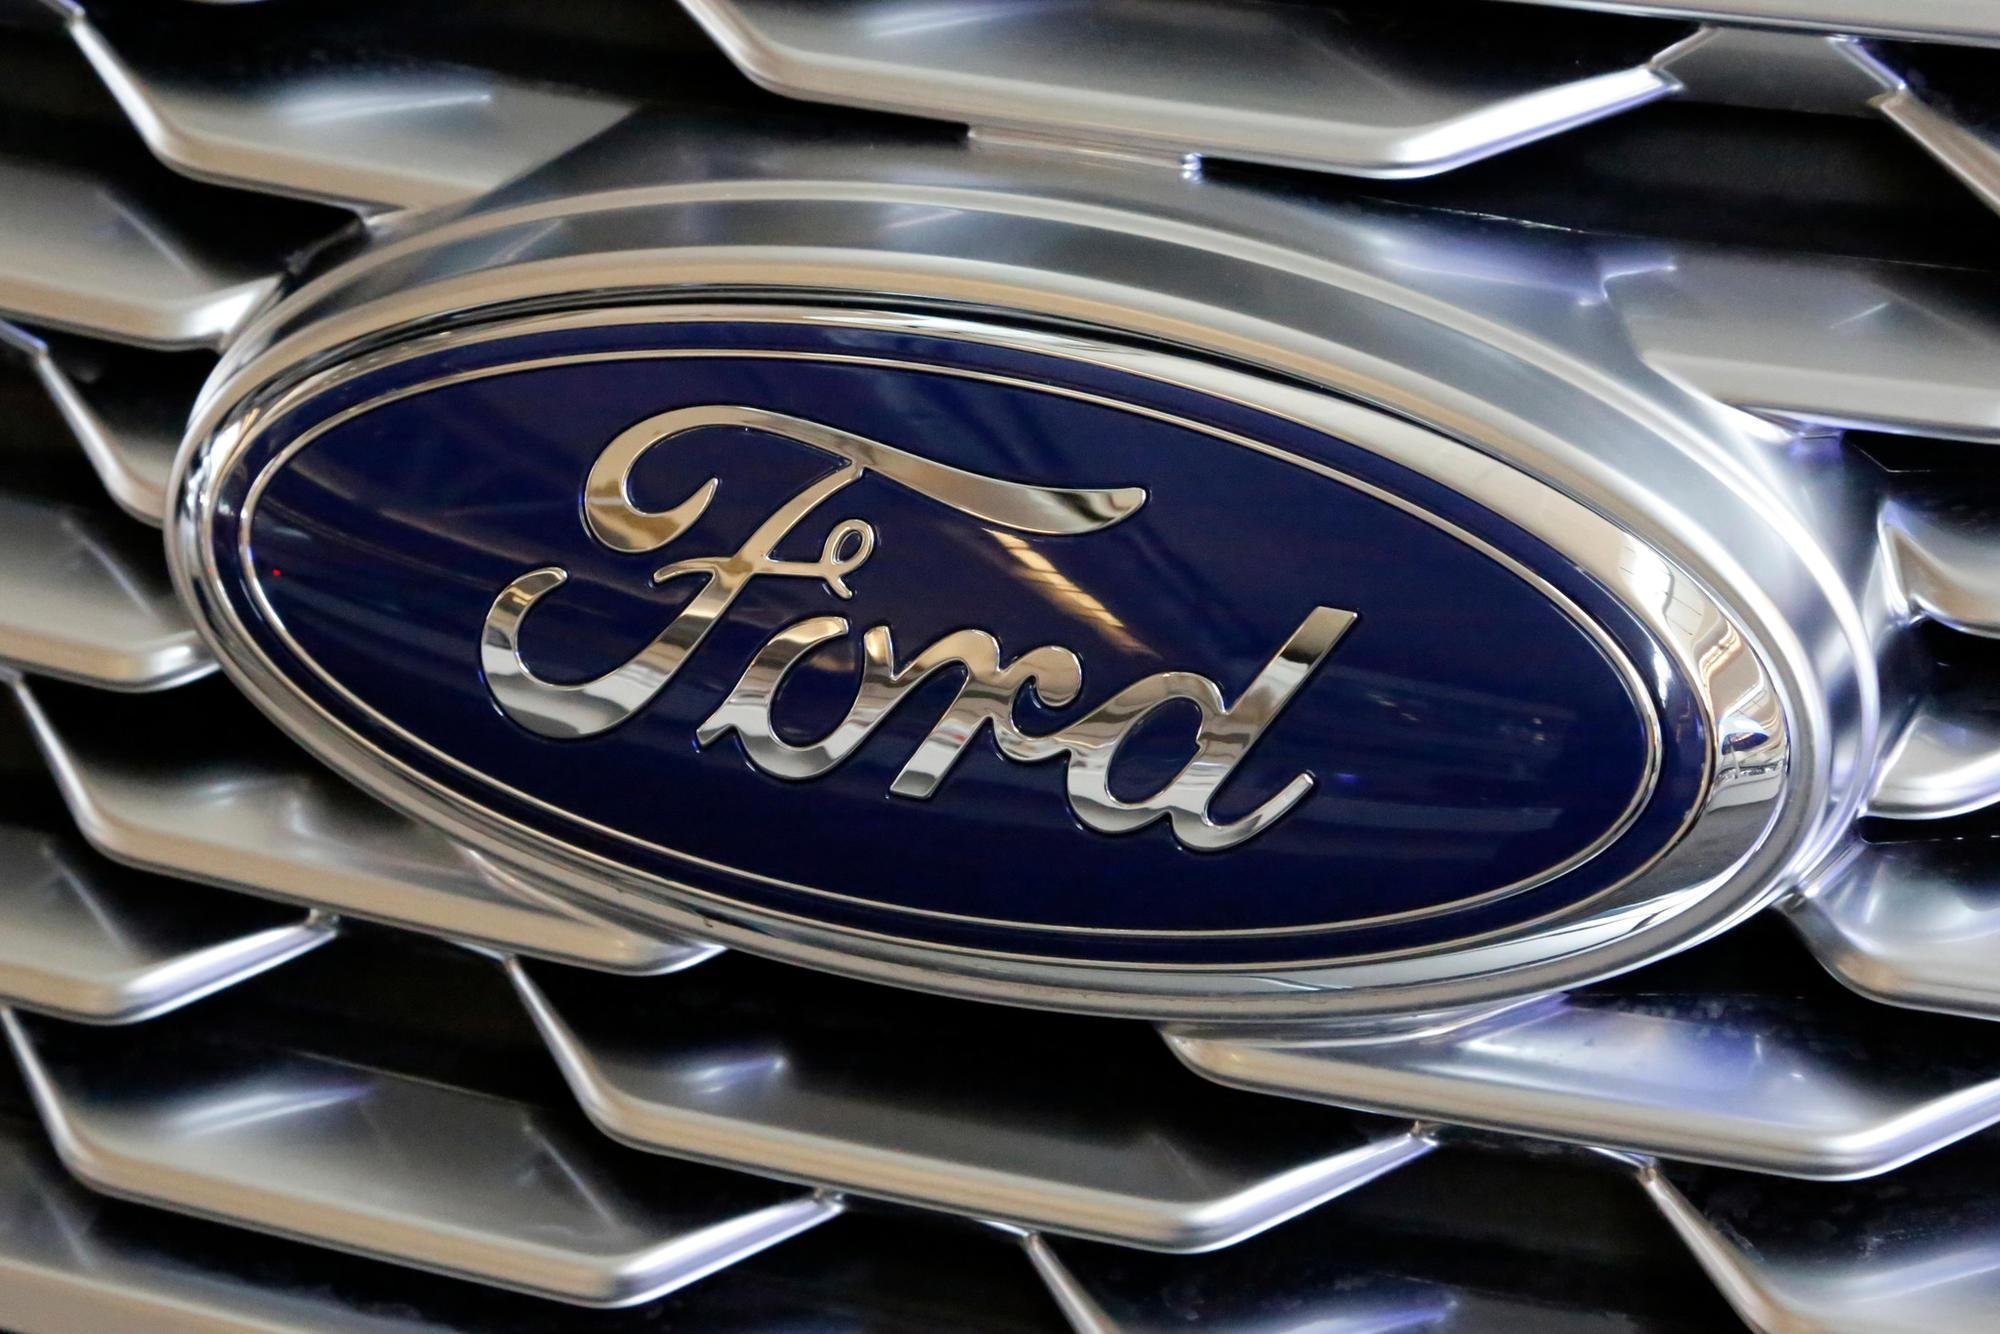 New Ford To Discontinue All Cars Except For Mustang And Focus On This Month